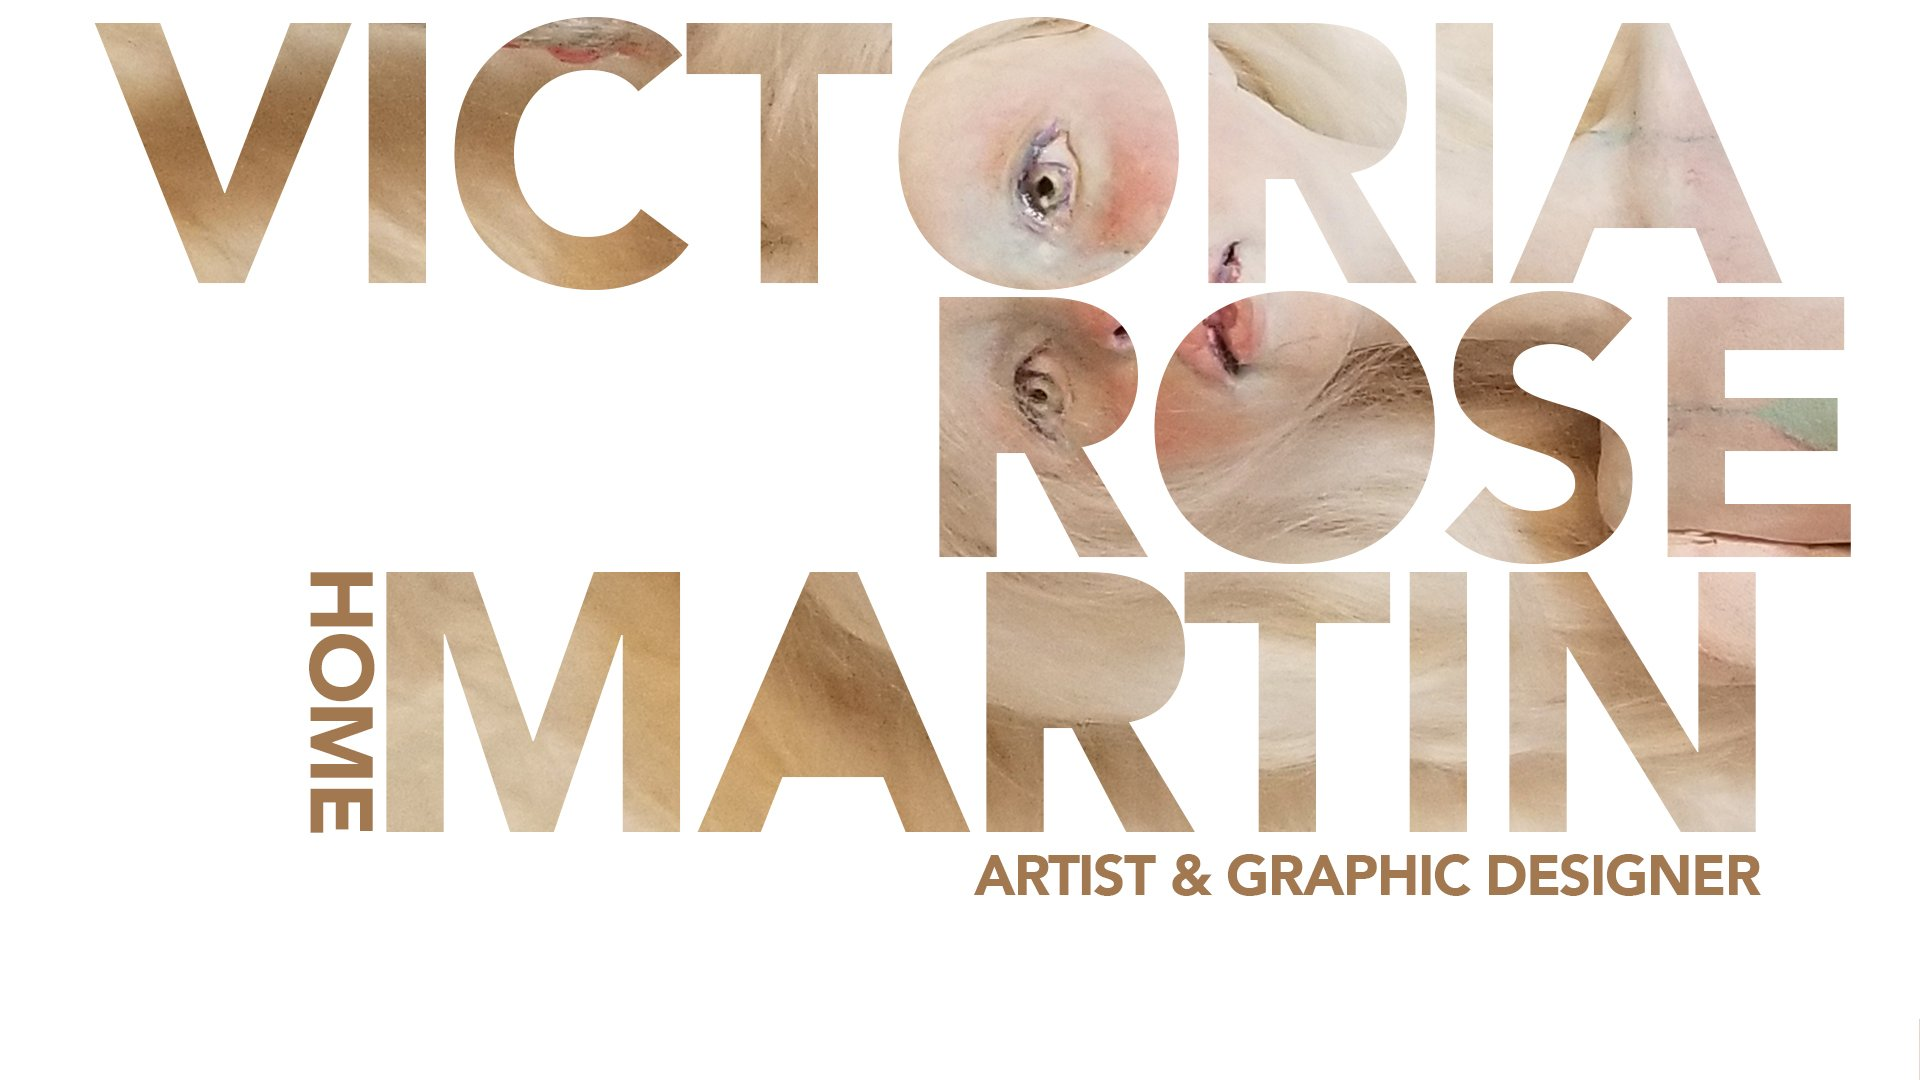 home page of artist and graphic designer Victoria Rose Martin, professor of art palm beach state college